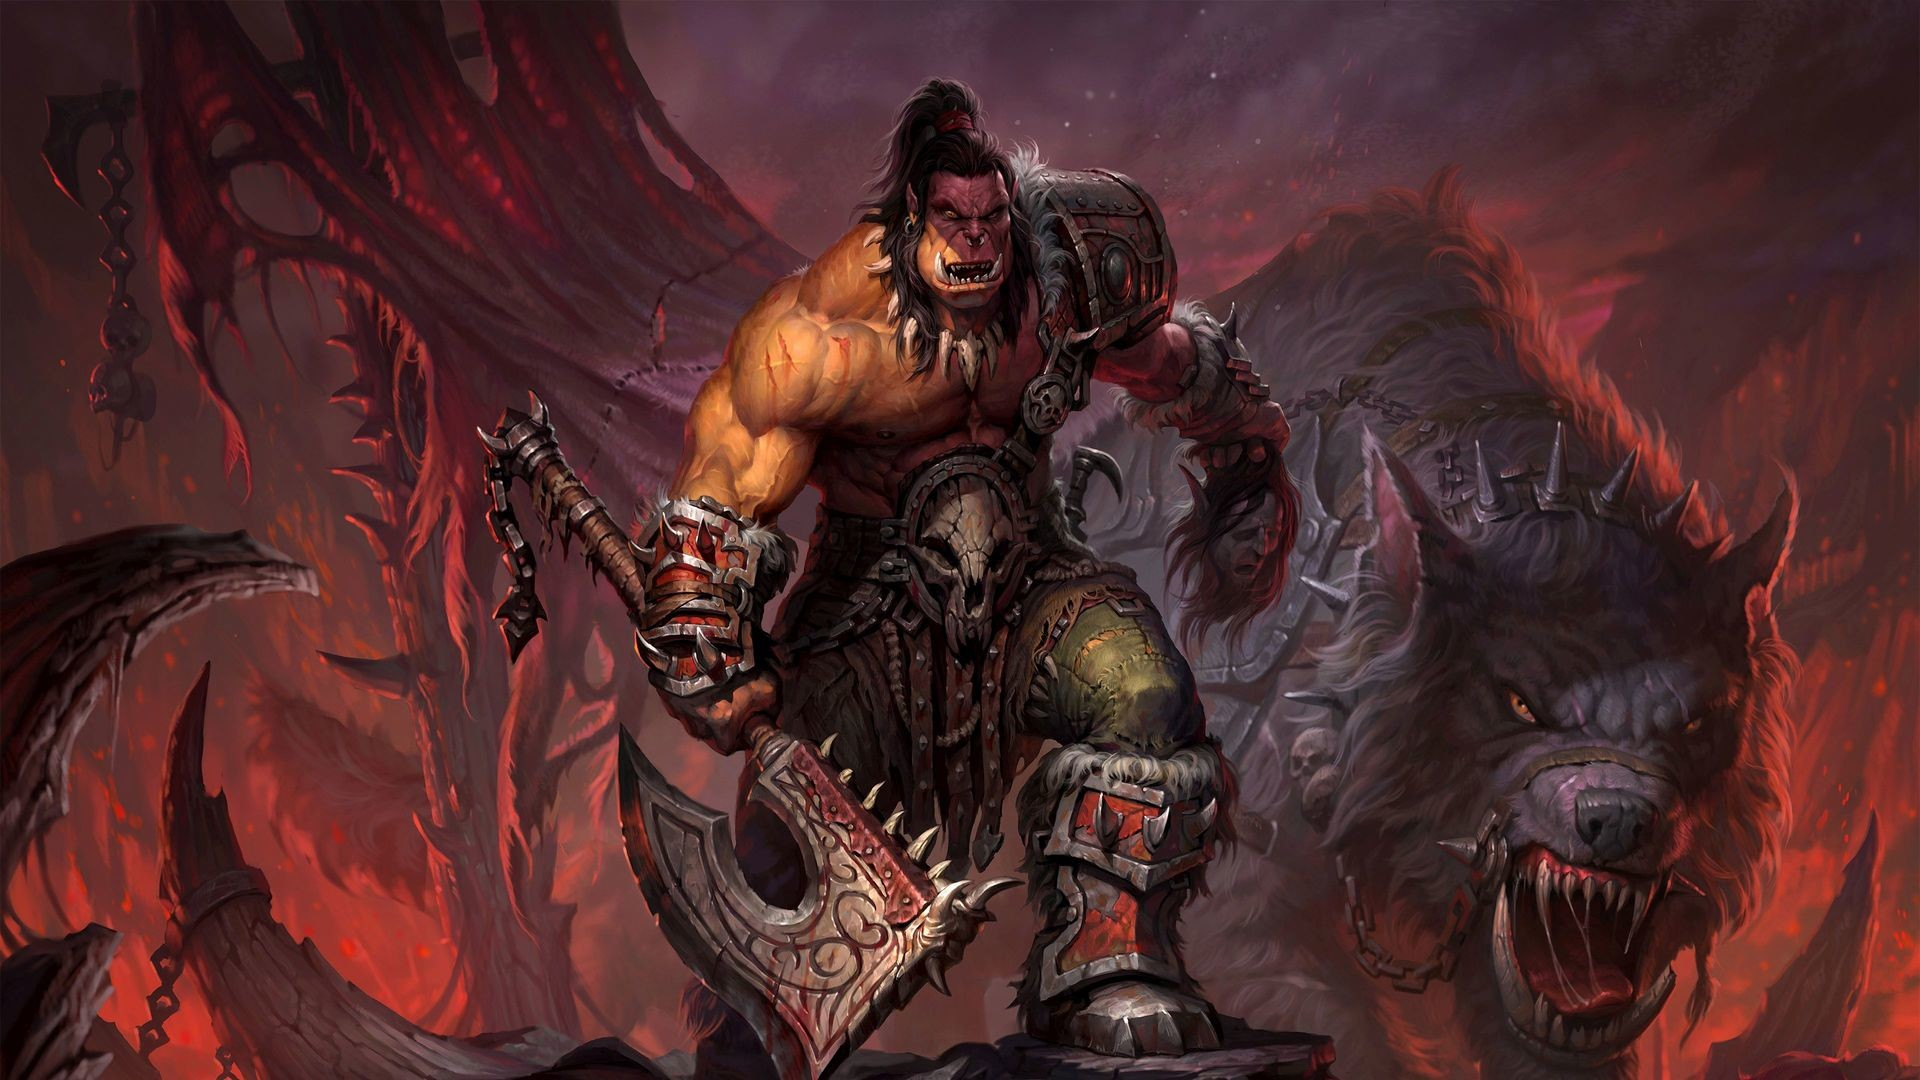 World Of Warcraft Wallpaper 1920x1080: World Of Warcraft Wallpapers HD (86+ Background Pictures